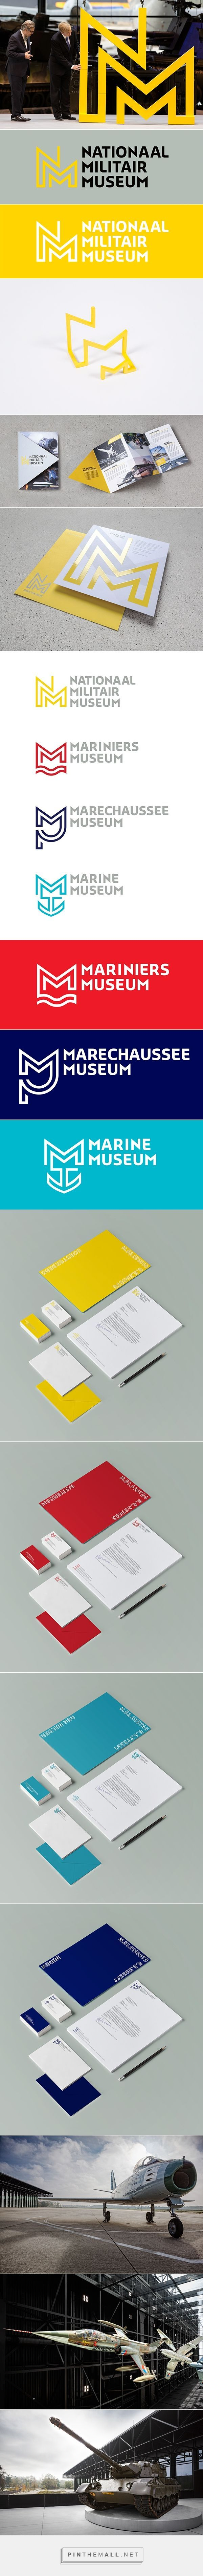 National Military Museum: Identity on Behance. If you like UX, design, or design thinking, check out theuxblog.com